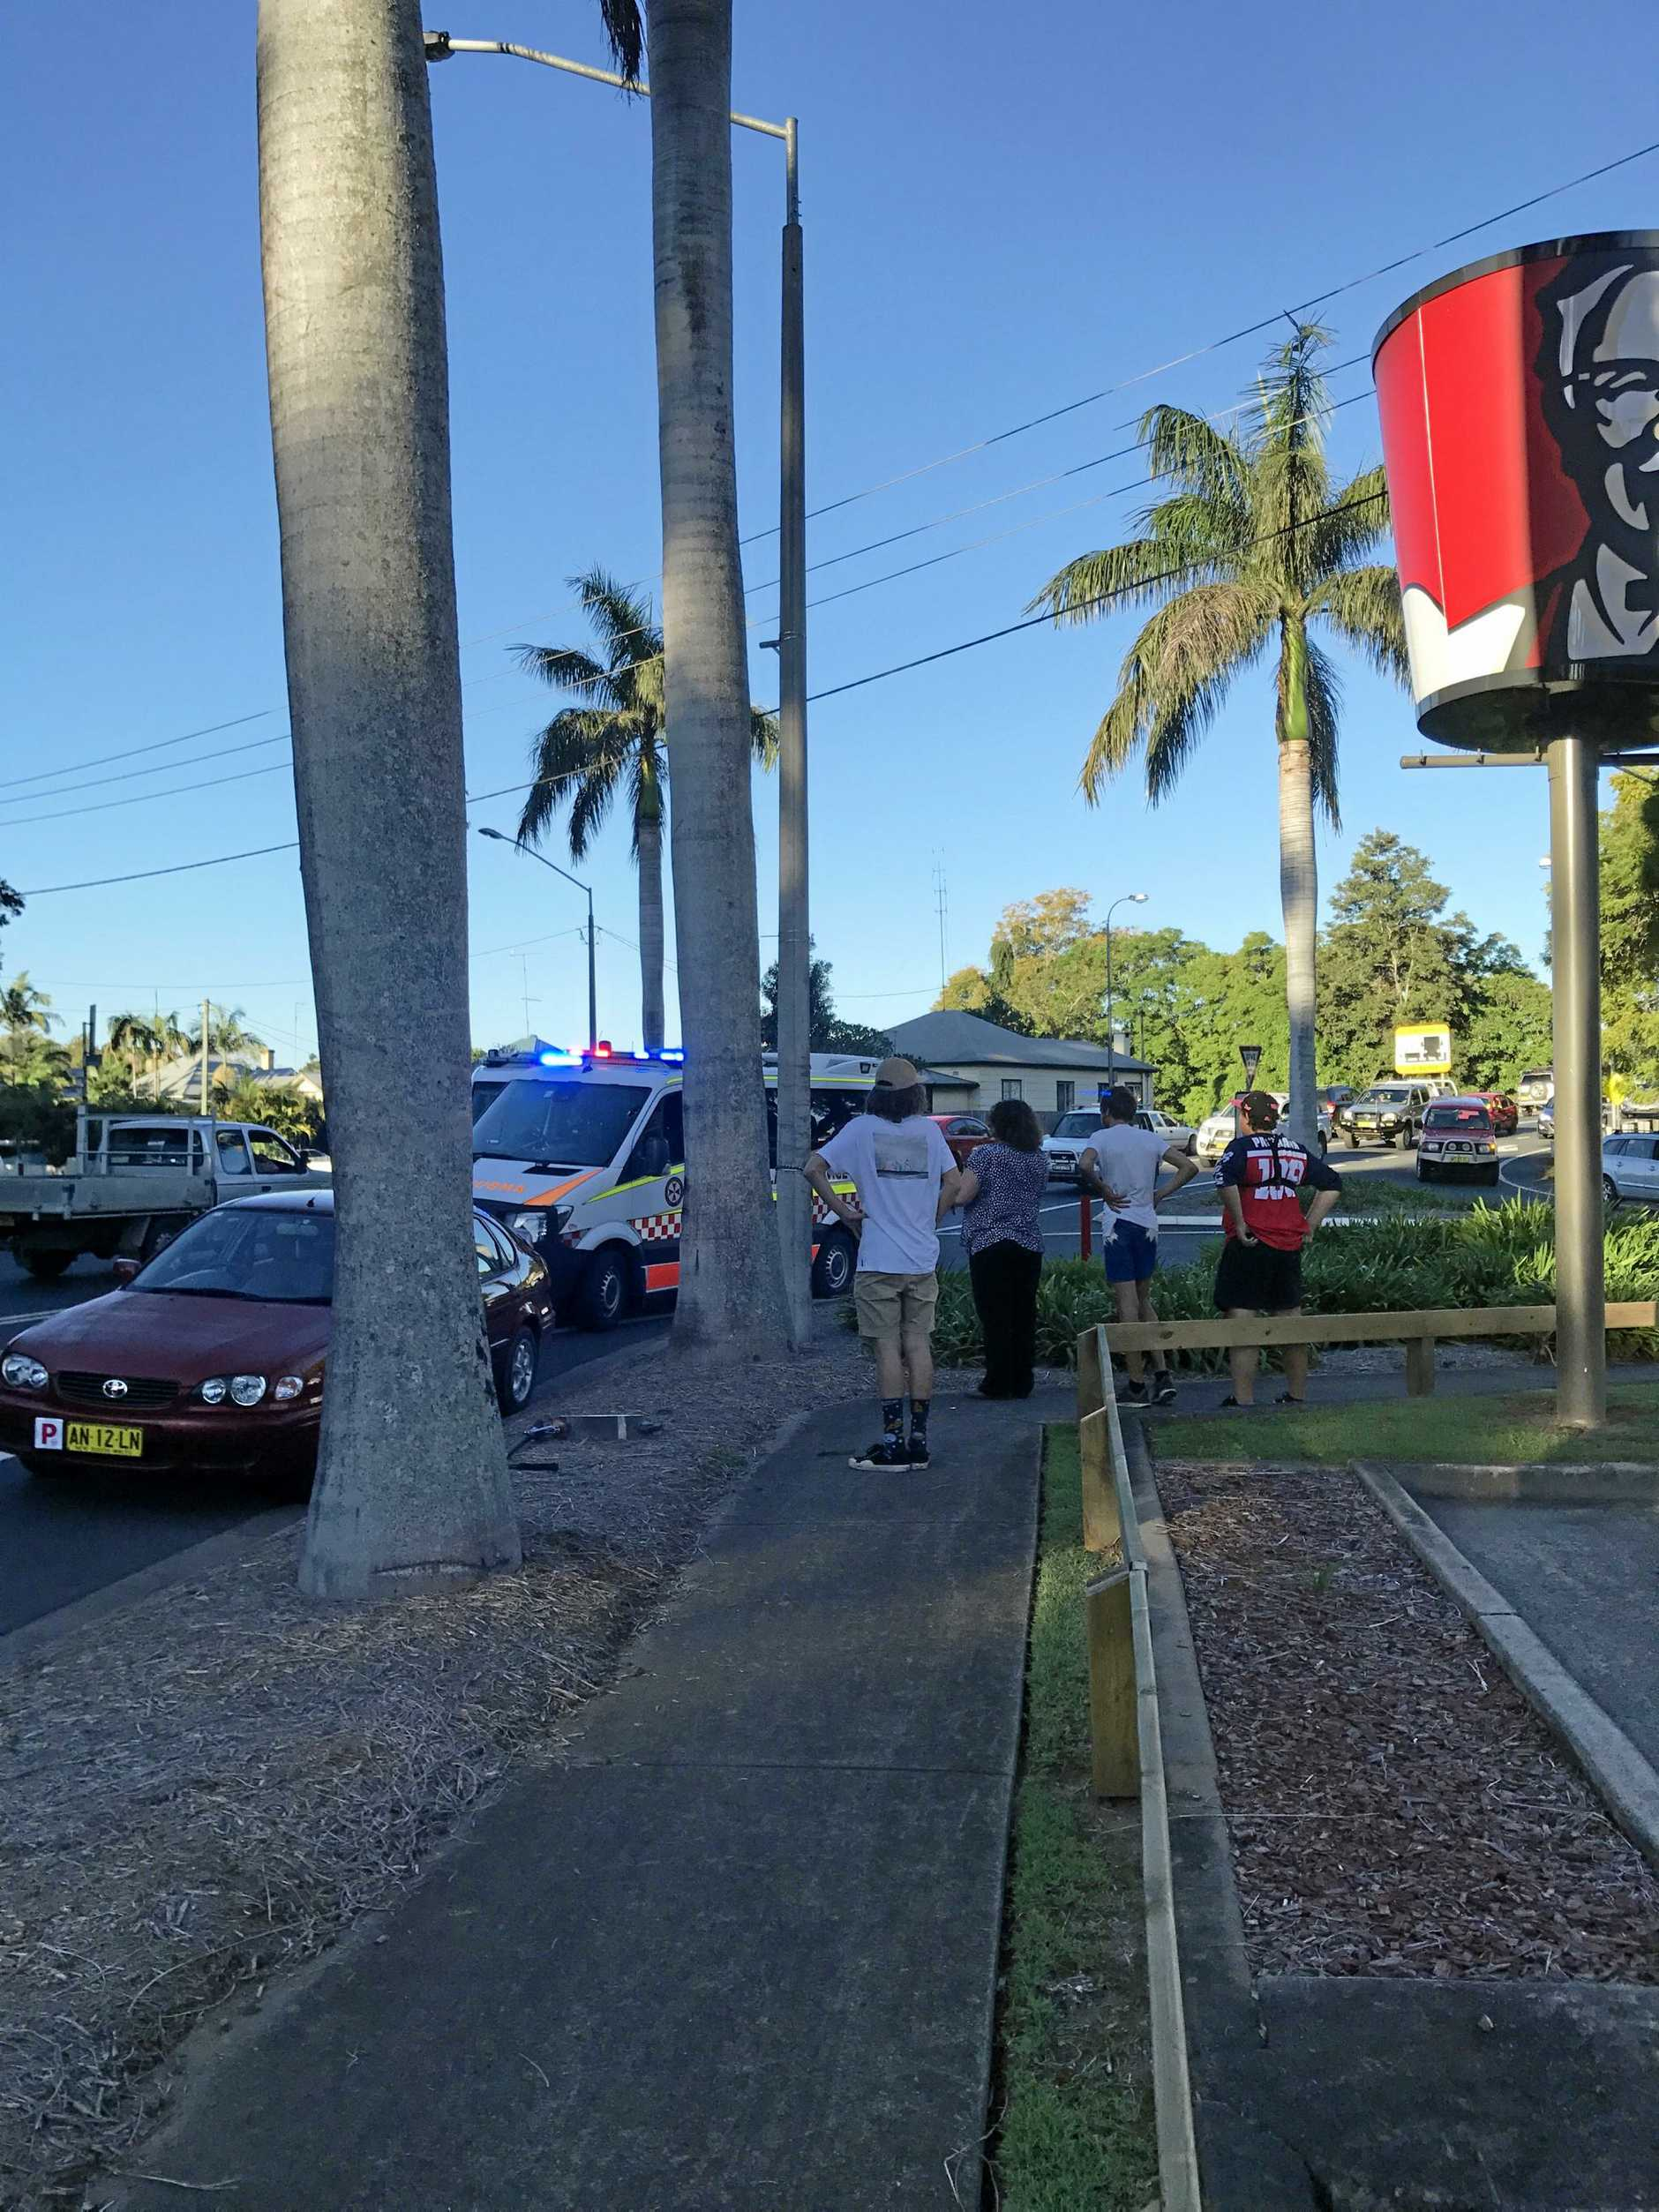 An individual was struck by a vehicle on Fitzroy St this afternoon.